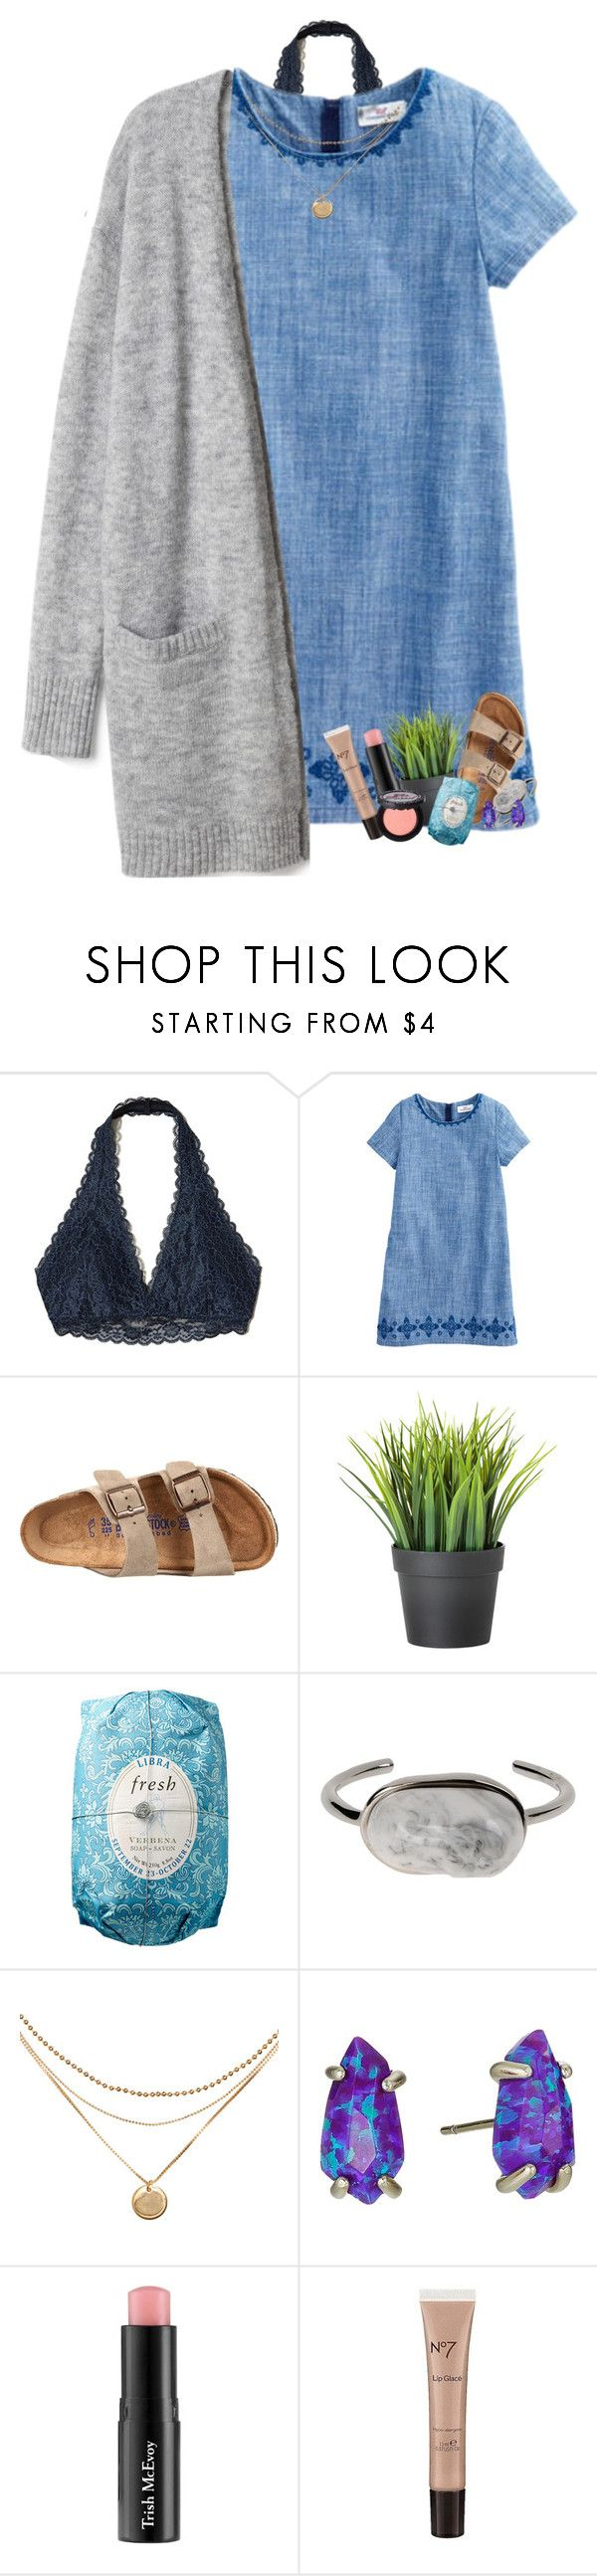 """""""The voices in my head are fighting"""" by livnewell ❤ liked on Polyvore featuring Hollister Co., Birkenstock, Fresh, Balenciaga, Kendra Scott, Trish McEvoy, Boots No7 and Too Faced Cosmetics"""